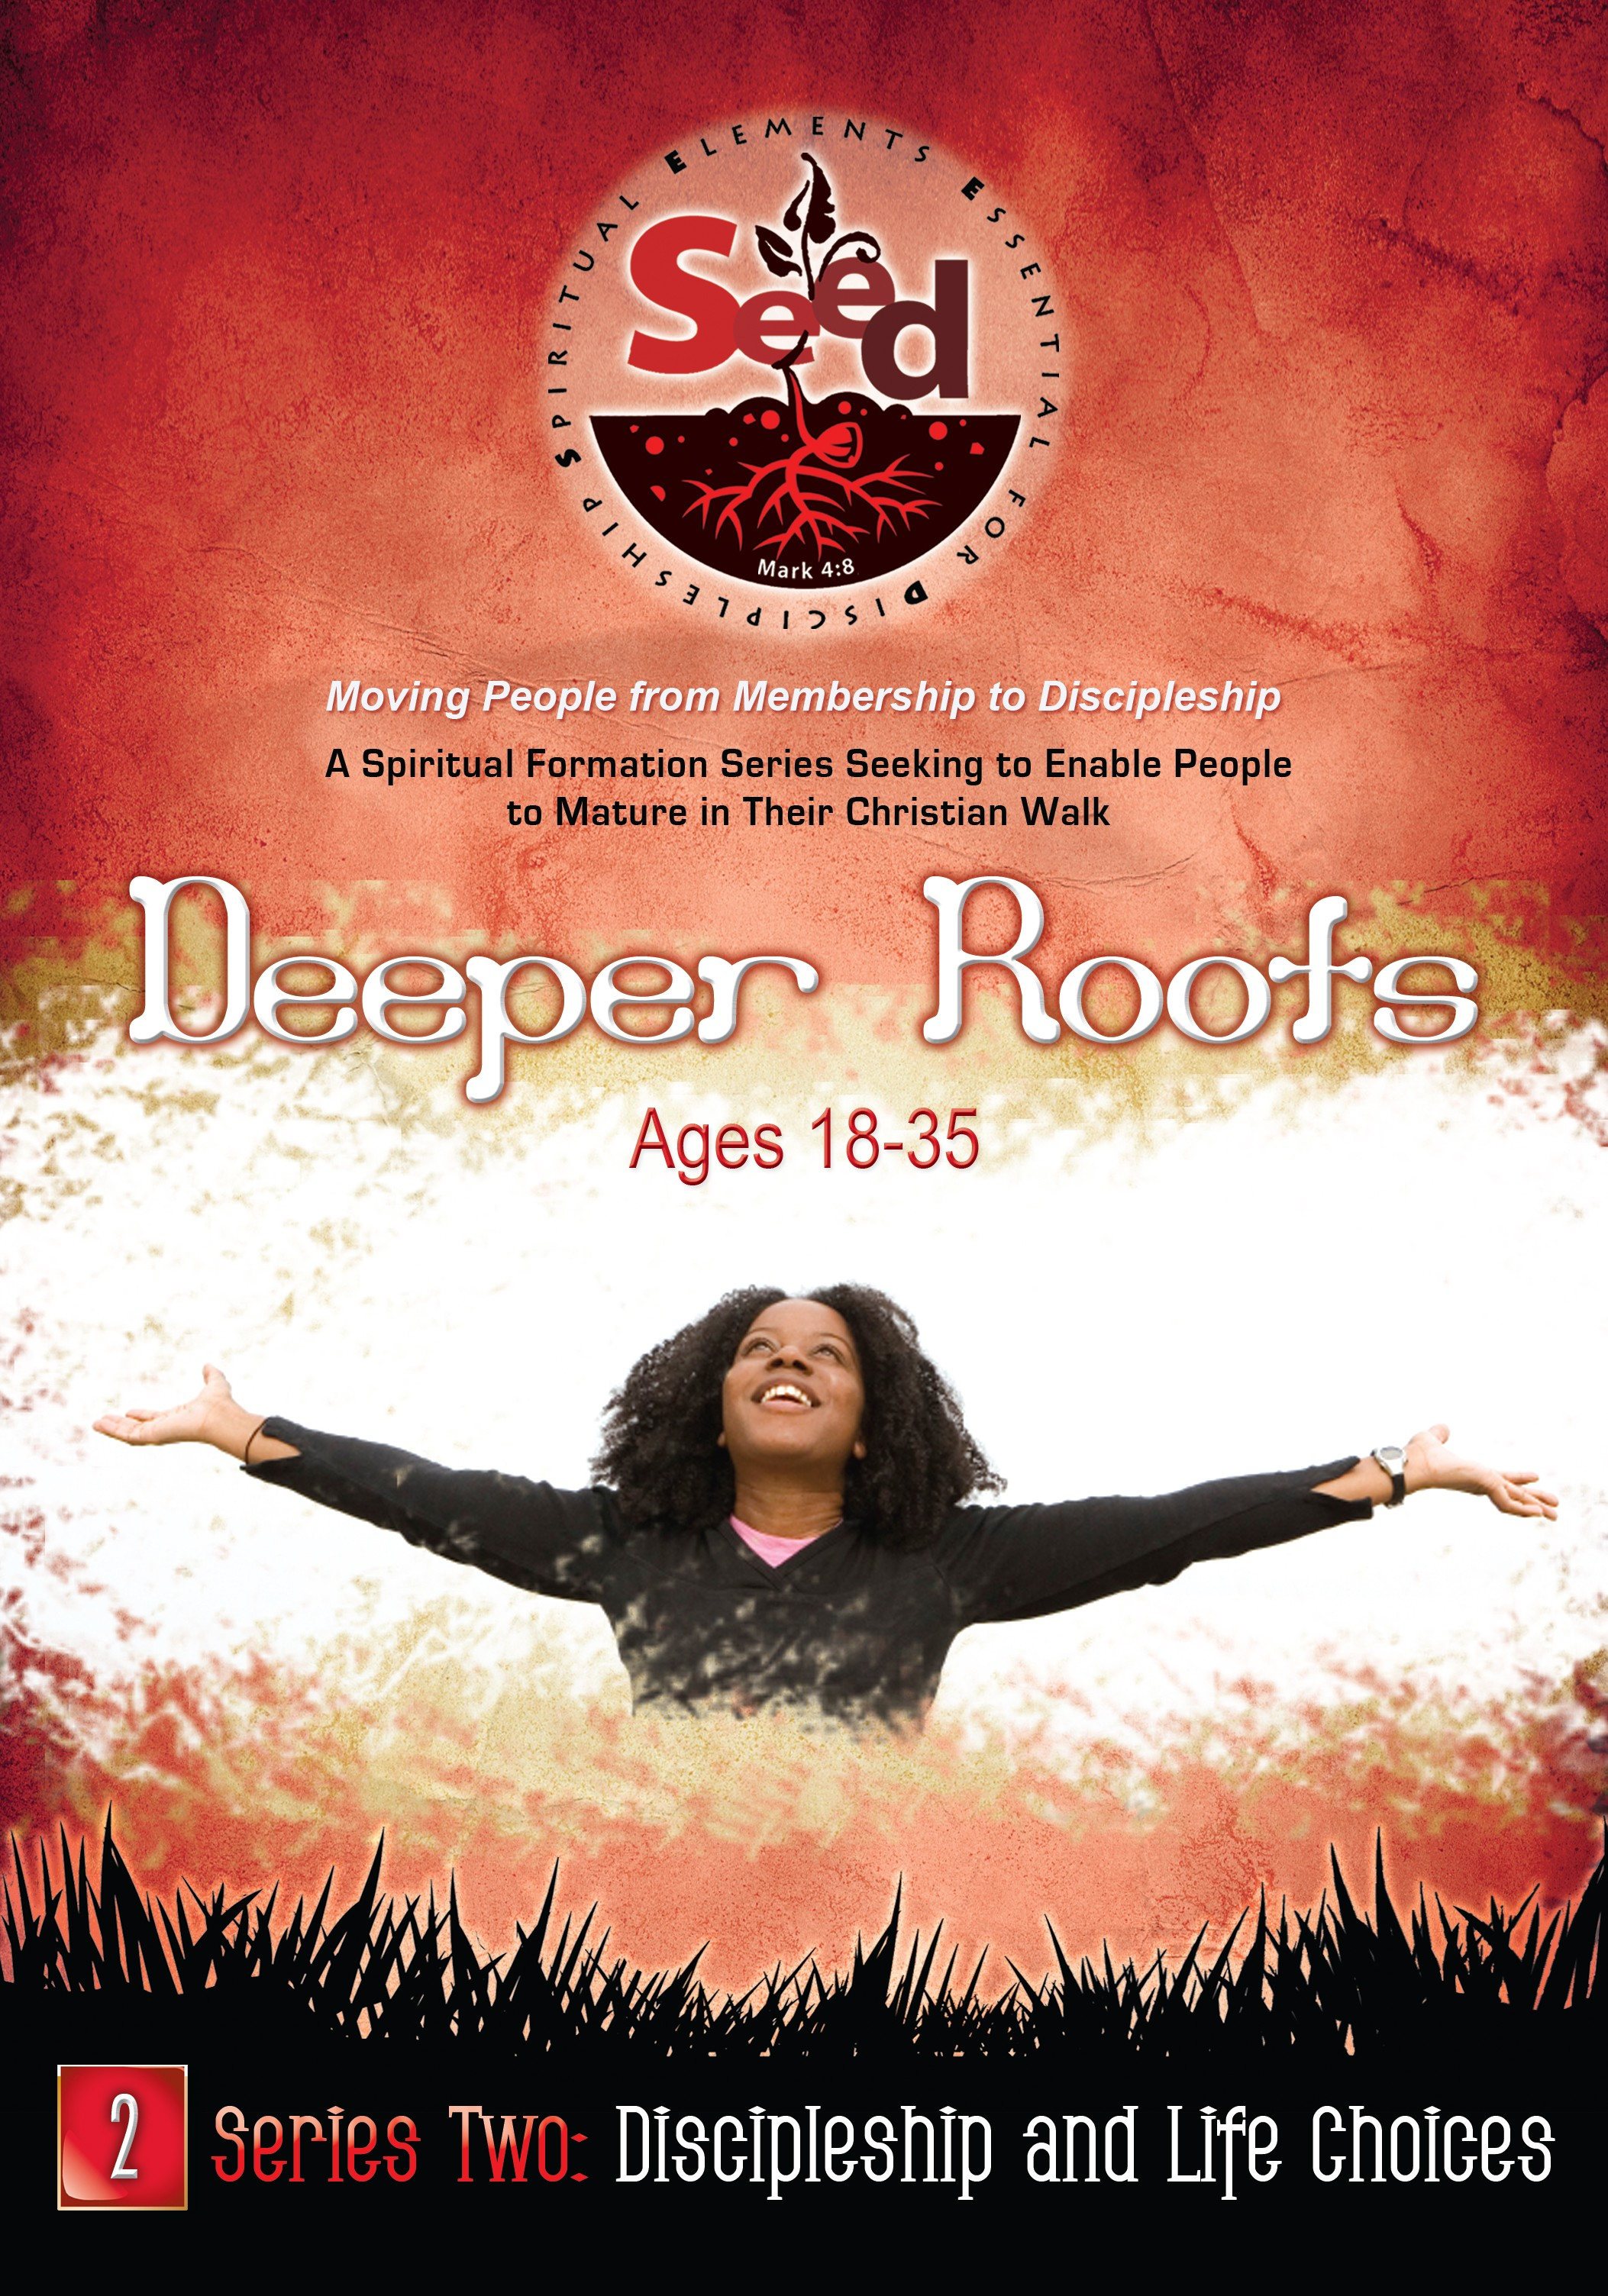 SEED Deeper Roots (Ages 18-35): Series 2: Discipleship and Life Choices